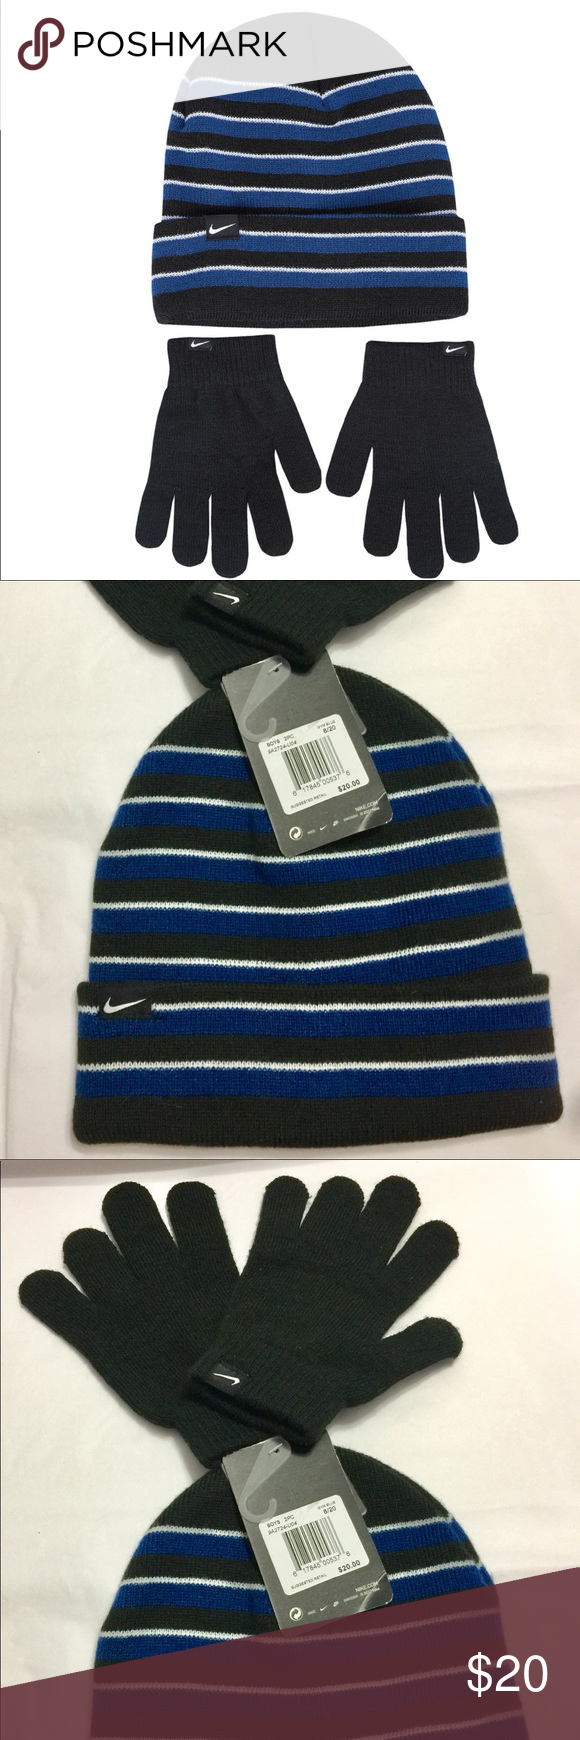 Boys Nike Beenie Gloves Hat Royal Black This is for Youth Boys 2 pc Nike  Beenie   Matching Gloves. Size Youth 8 20 Brand New with tags Knit Cap is  Royal 5d2d39fac5fe